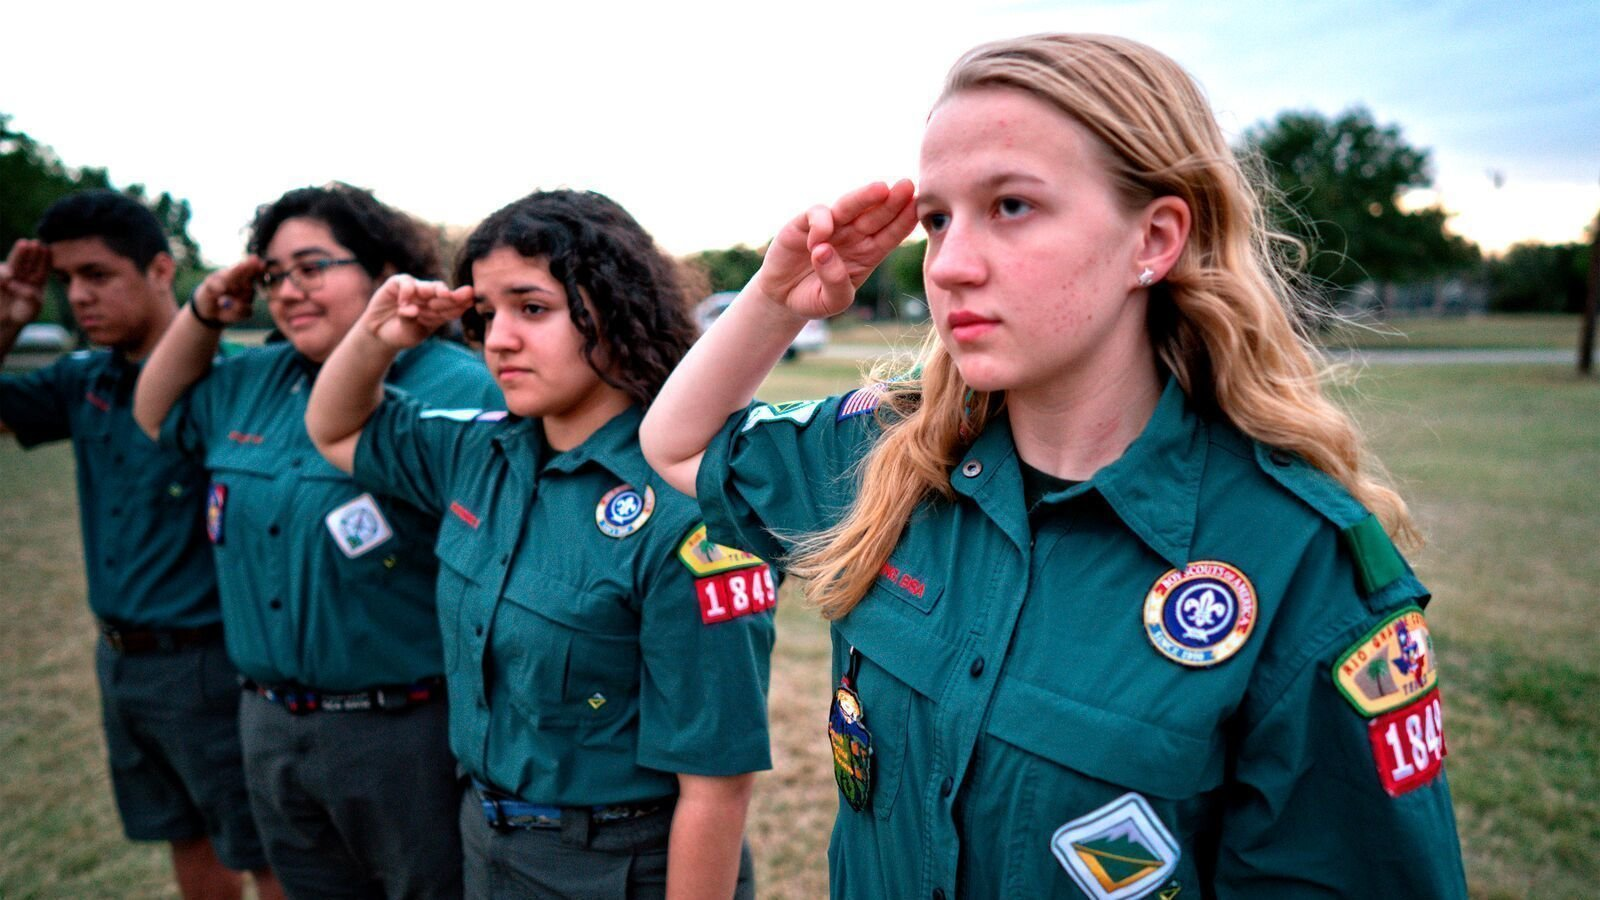 The Boy Scouts Will Now Allow Girls in Some Programs